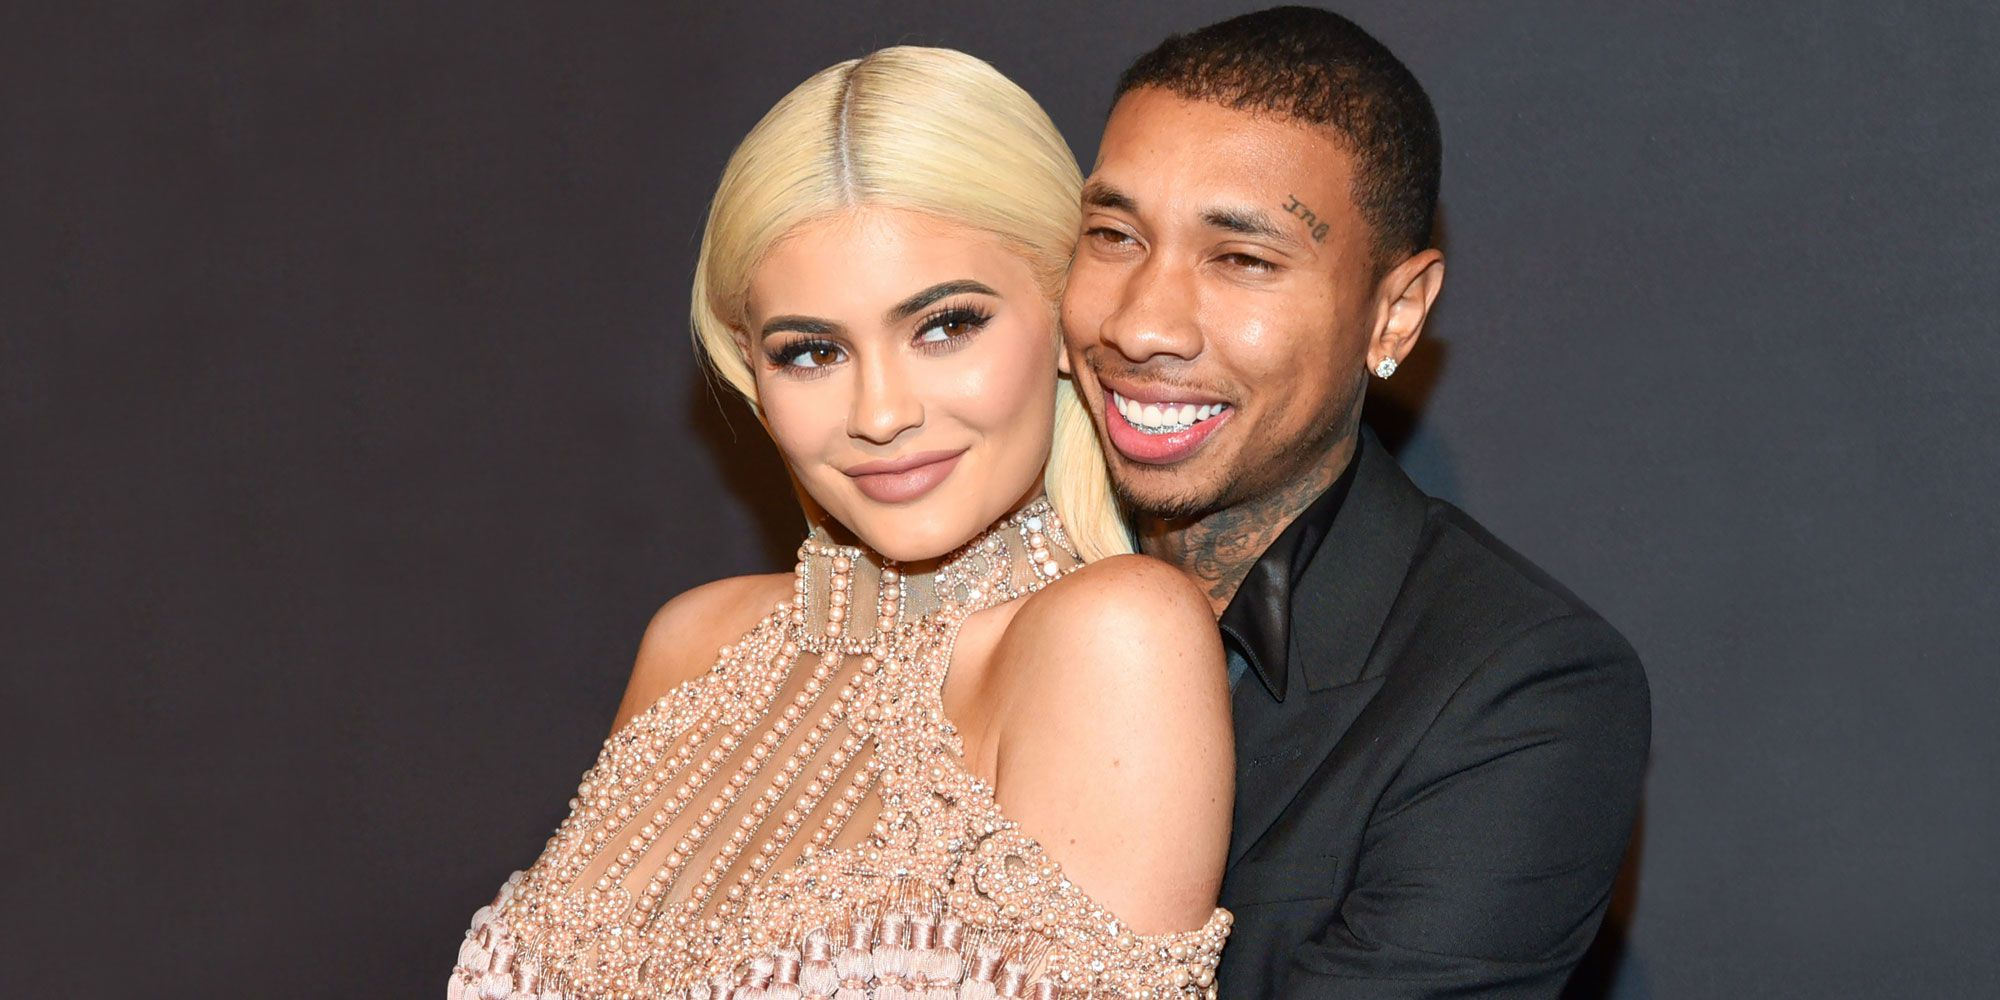 Tyga Shuts Down Kylie Jenner Relationship Questions In Awkward 'GMB' Interview